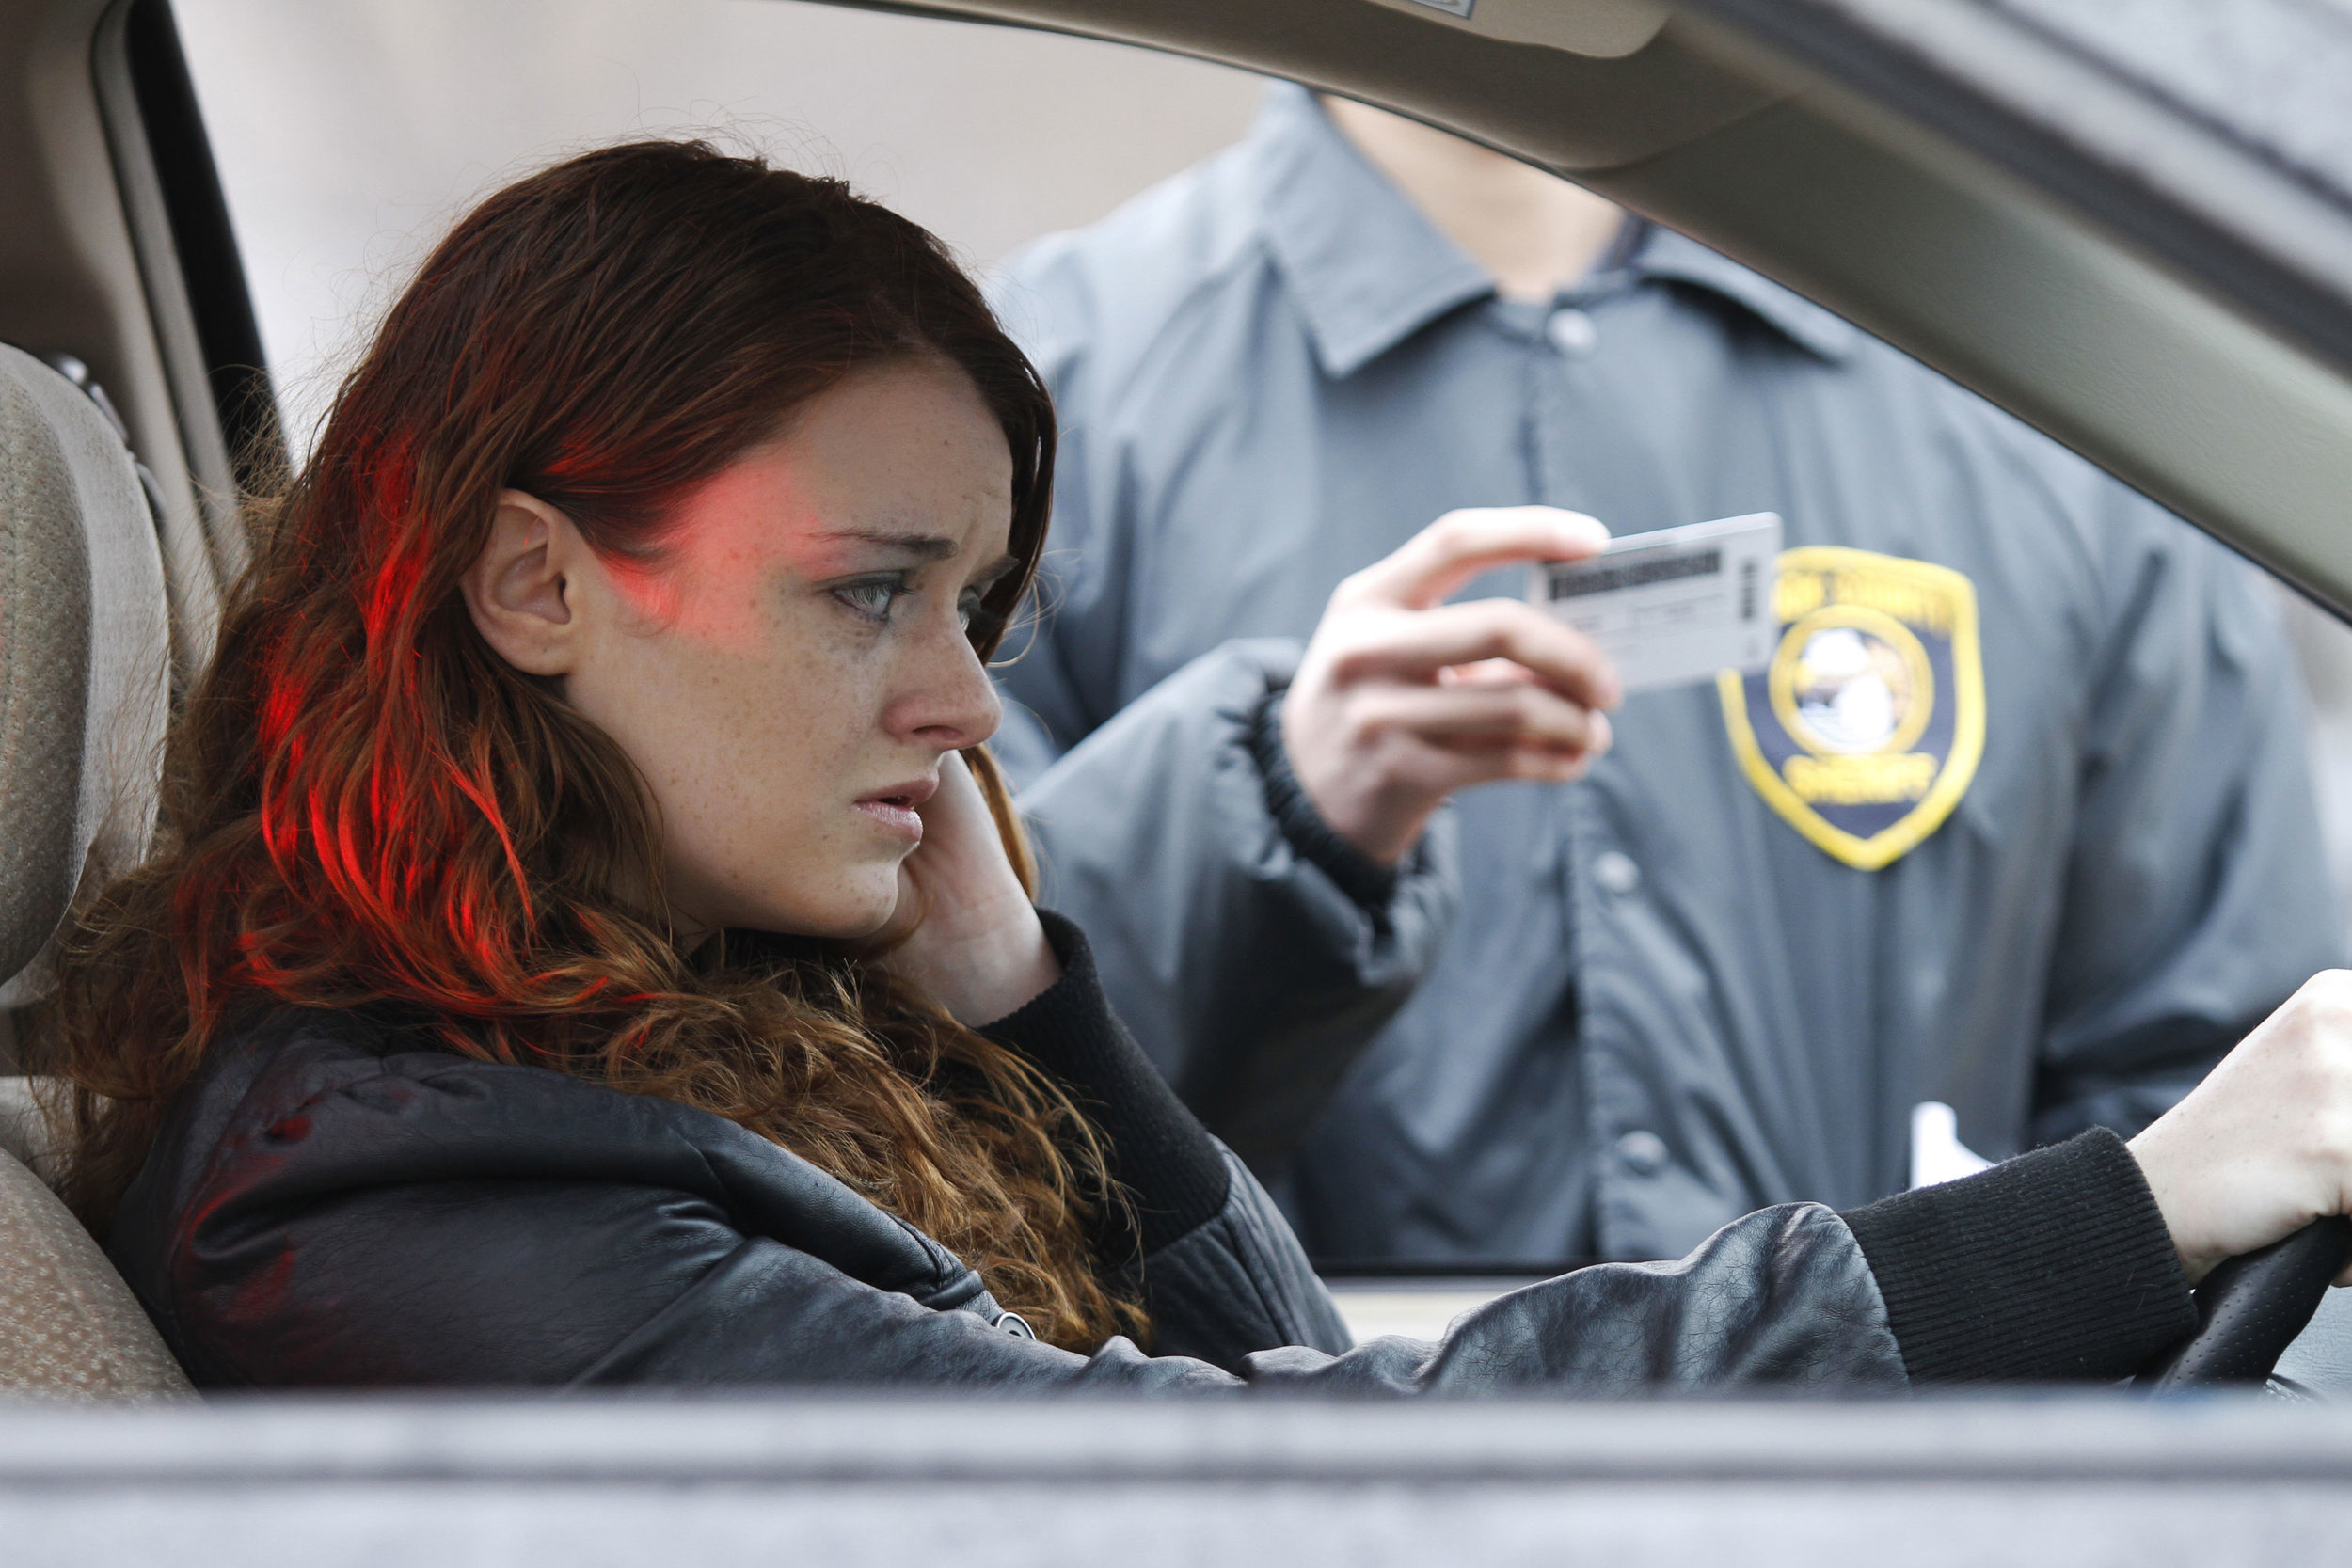 shutterstock_cop-giving-speeding-ticket.jpg